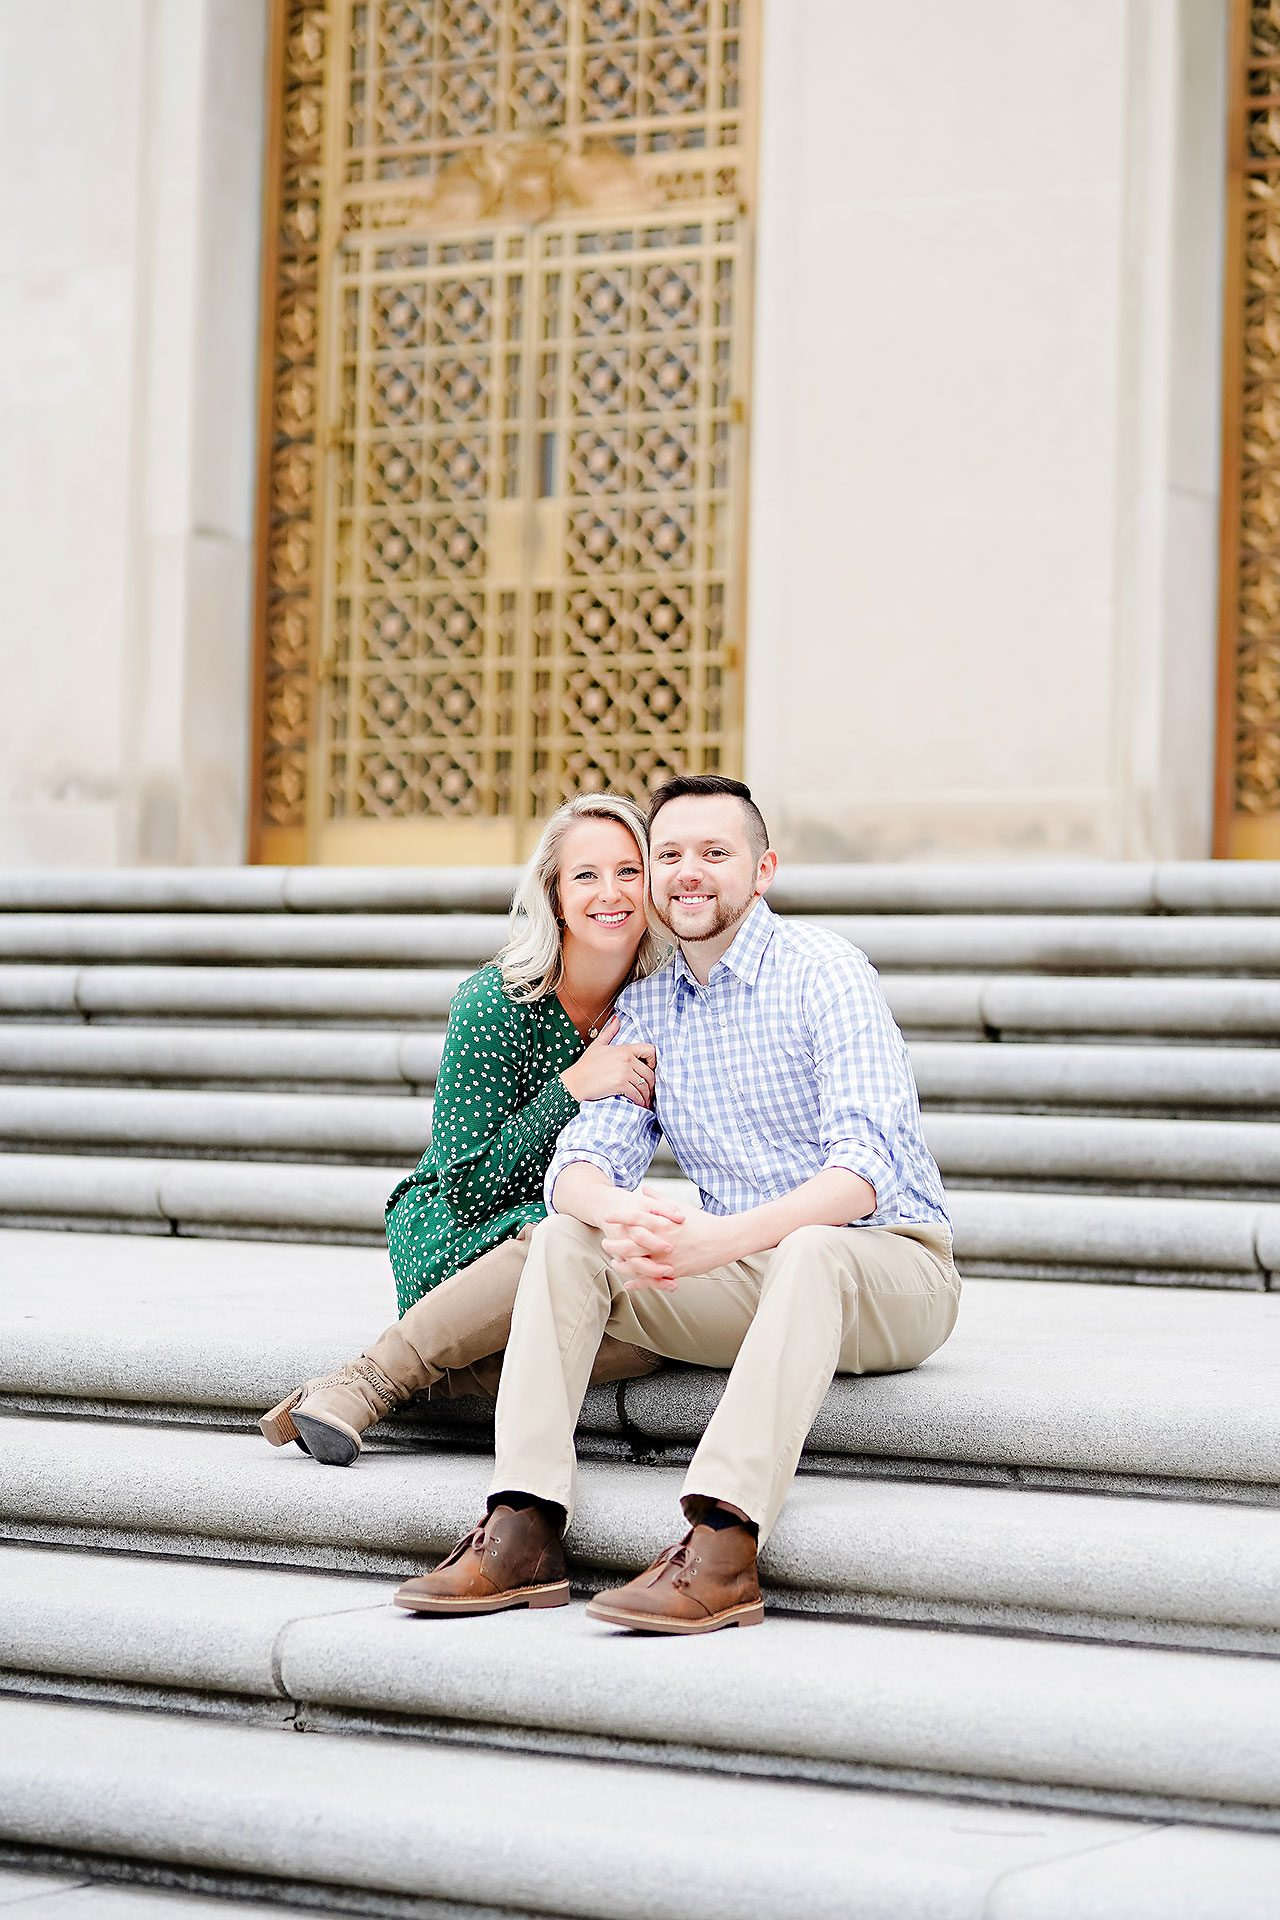 Kristen Jonny Indianapolis Downtown Engagement Session 064